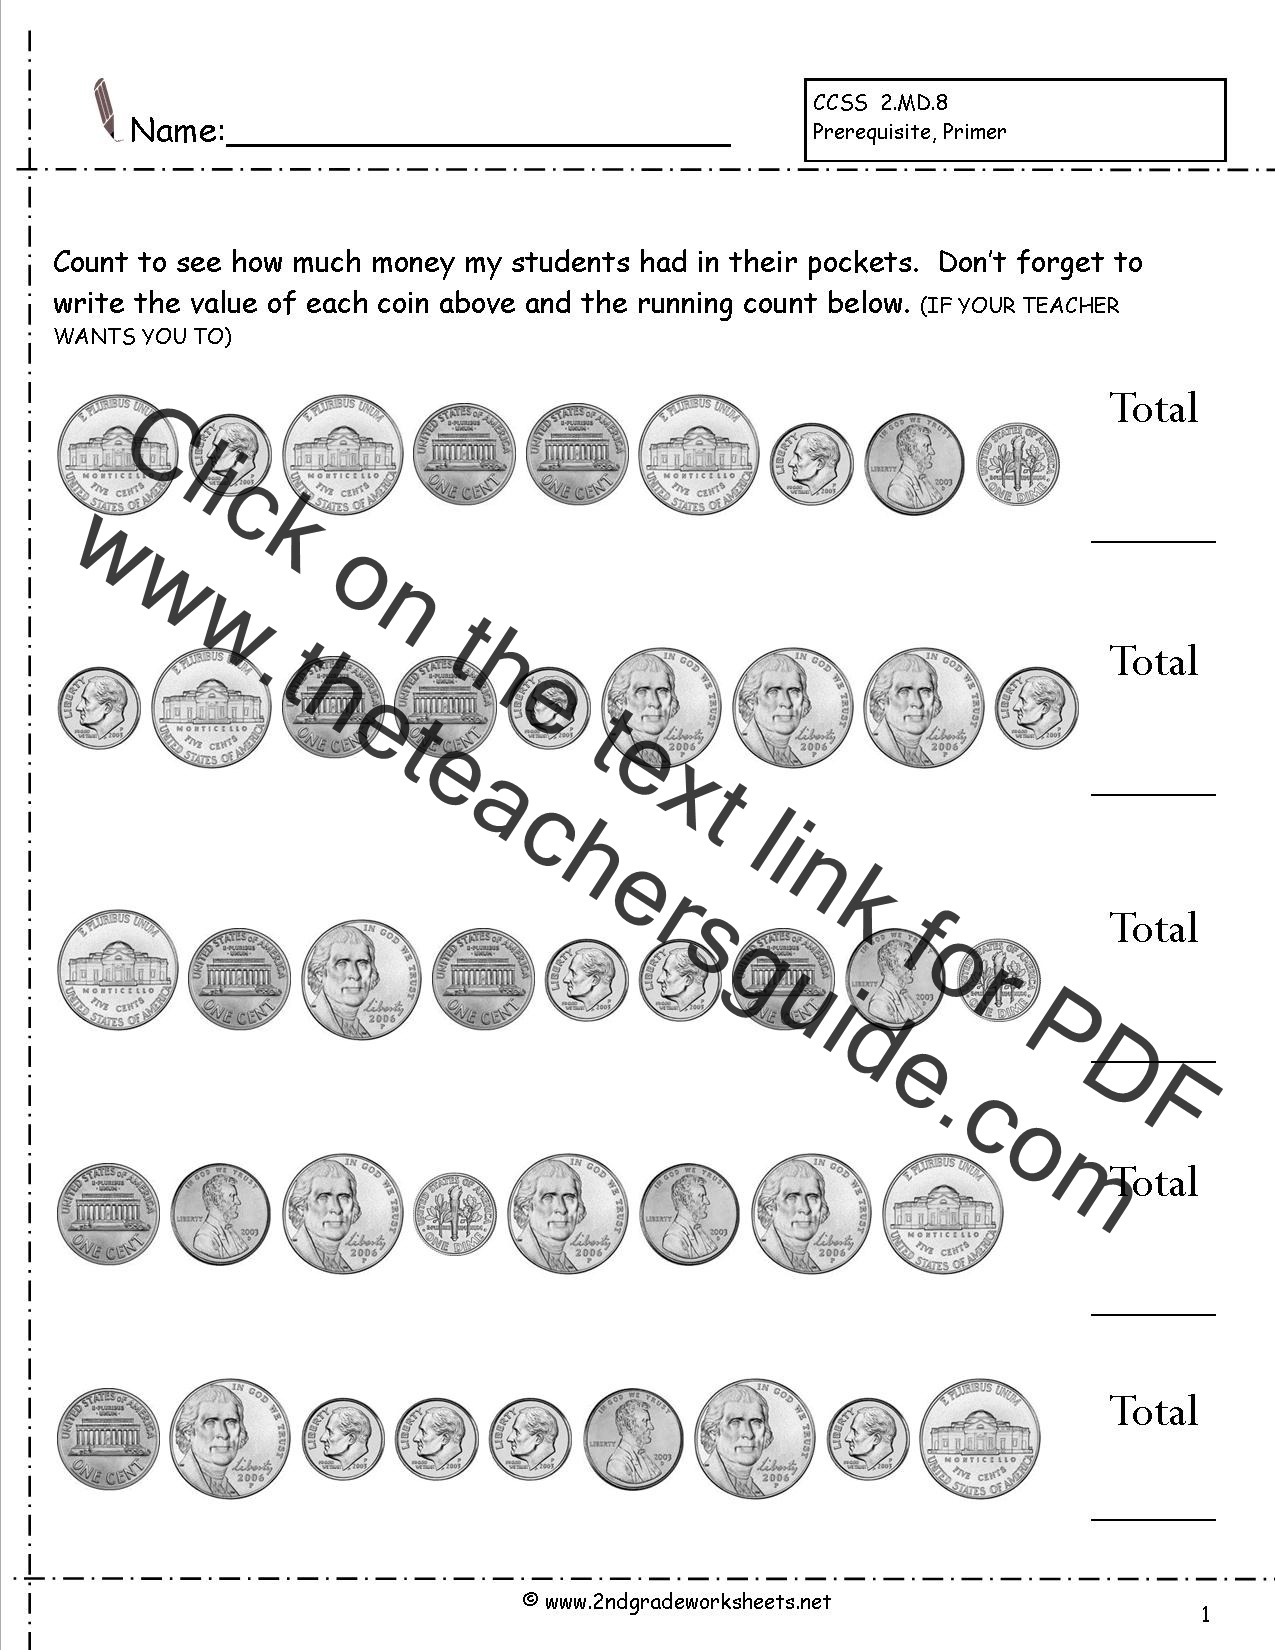 math worksheet : ccss 2 md 8 worksheets counting coins worksheets money  : Common Core Standards Math Worksheets